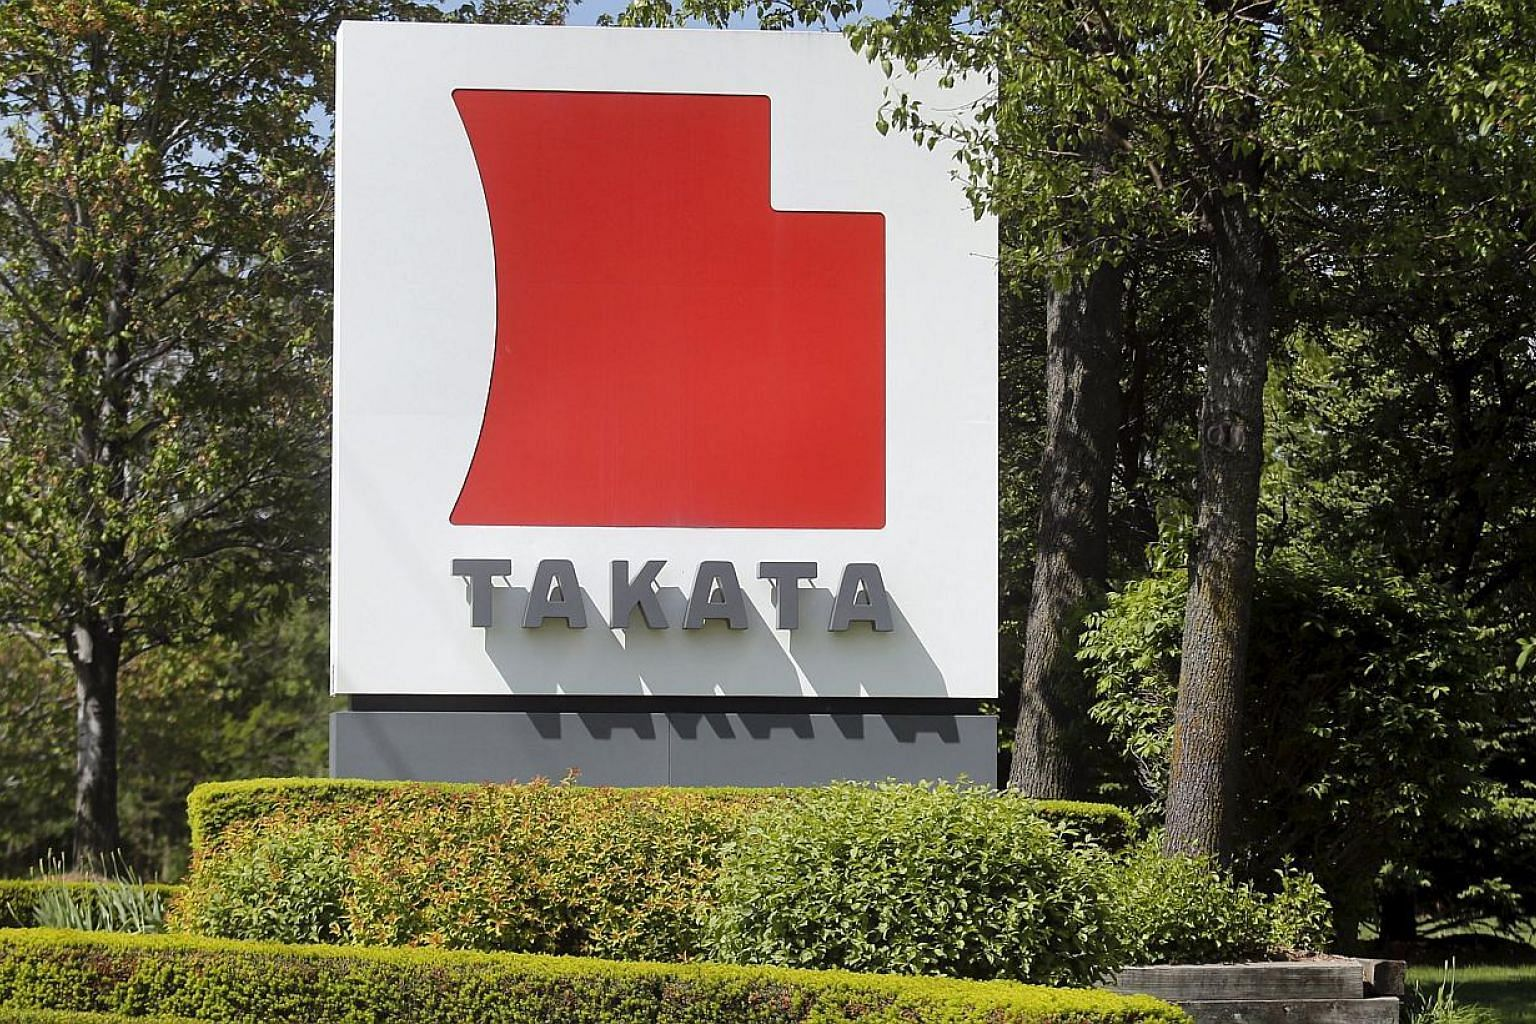 A sign with the Takata logo is seen along the driveway leading to the Takata Corporation building in Auburn Hills, Michigan, in this May 20, 2015 file photograph. -- PHOTO: REUTERS